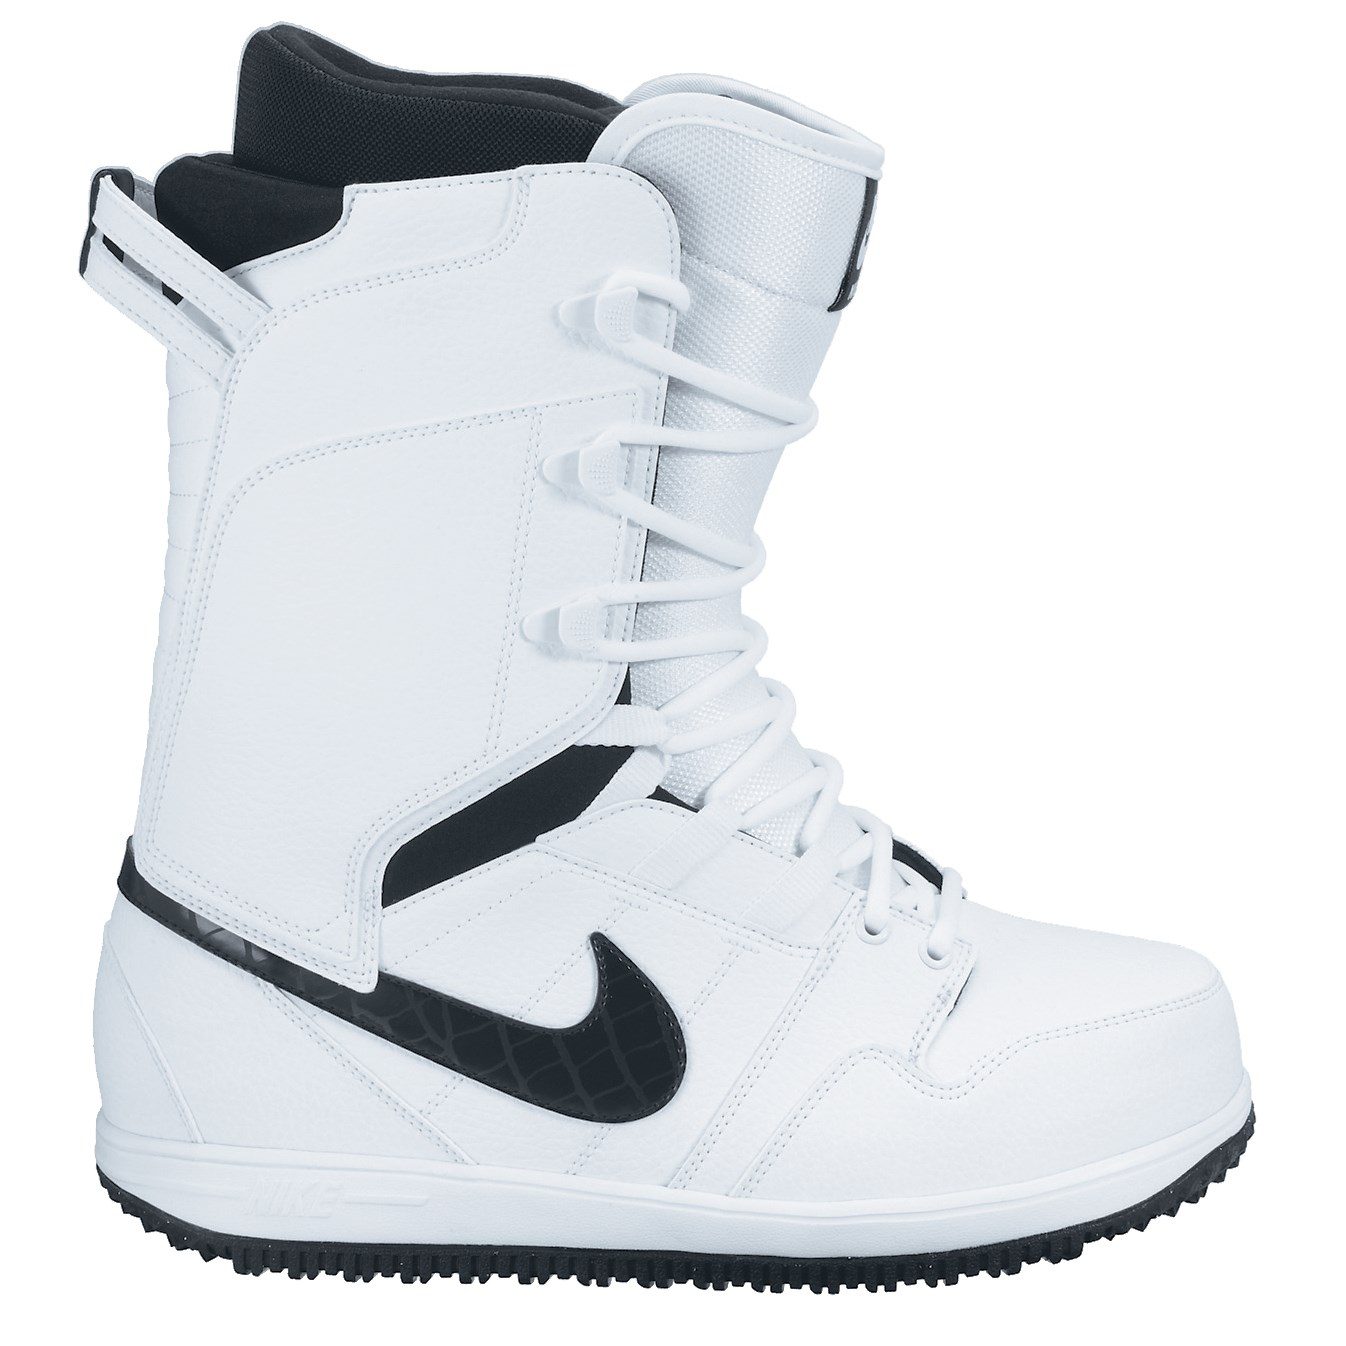 on sale great deals incredible prices Nike SB Vapen Snowboard Boots 2014